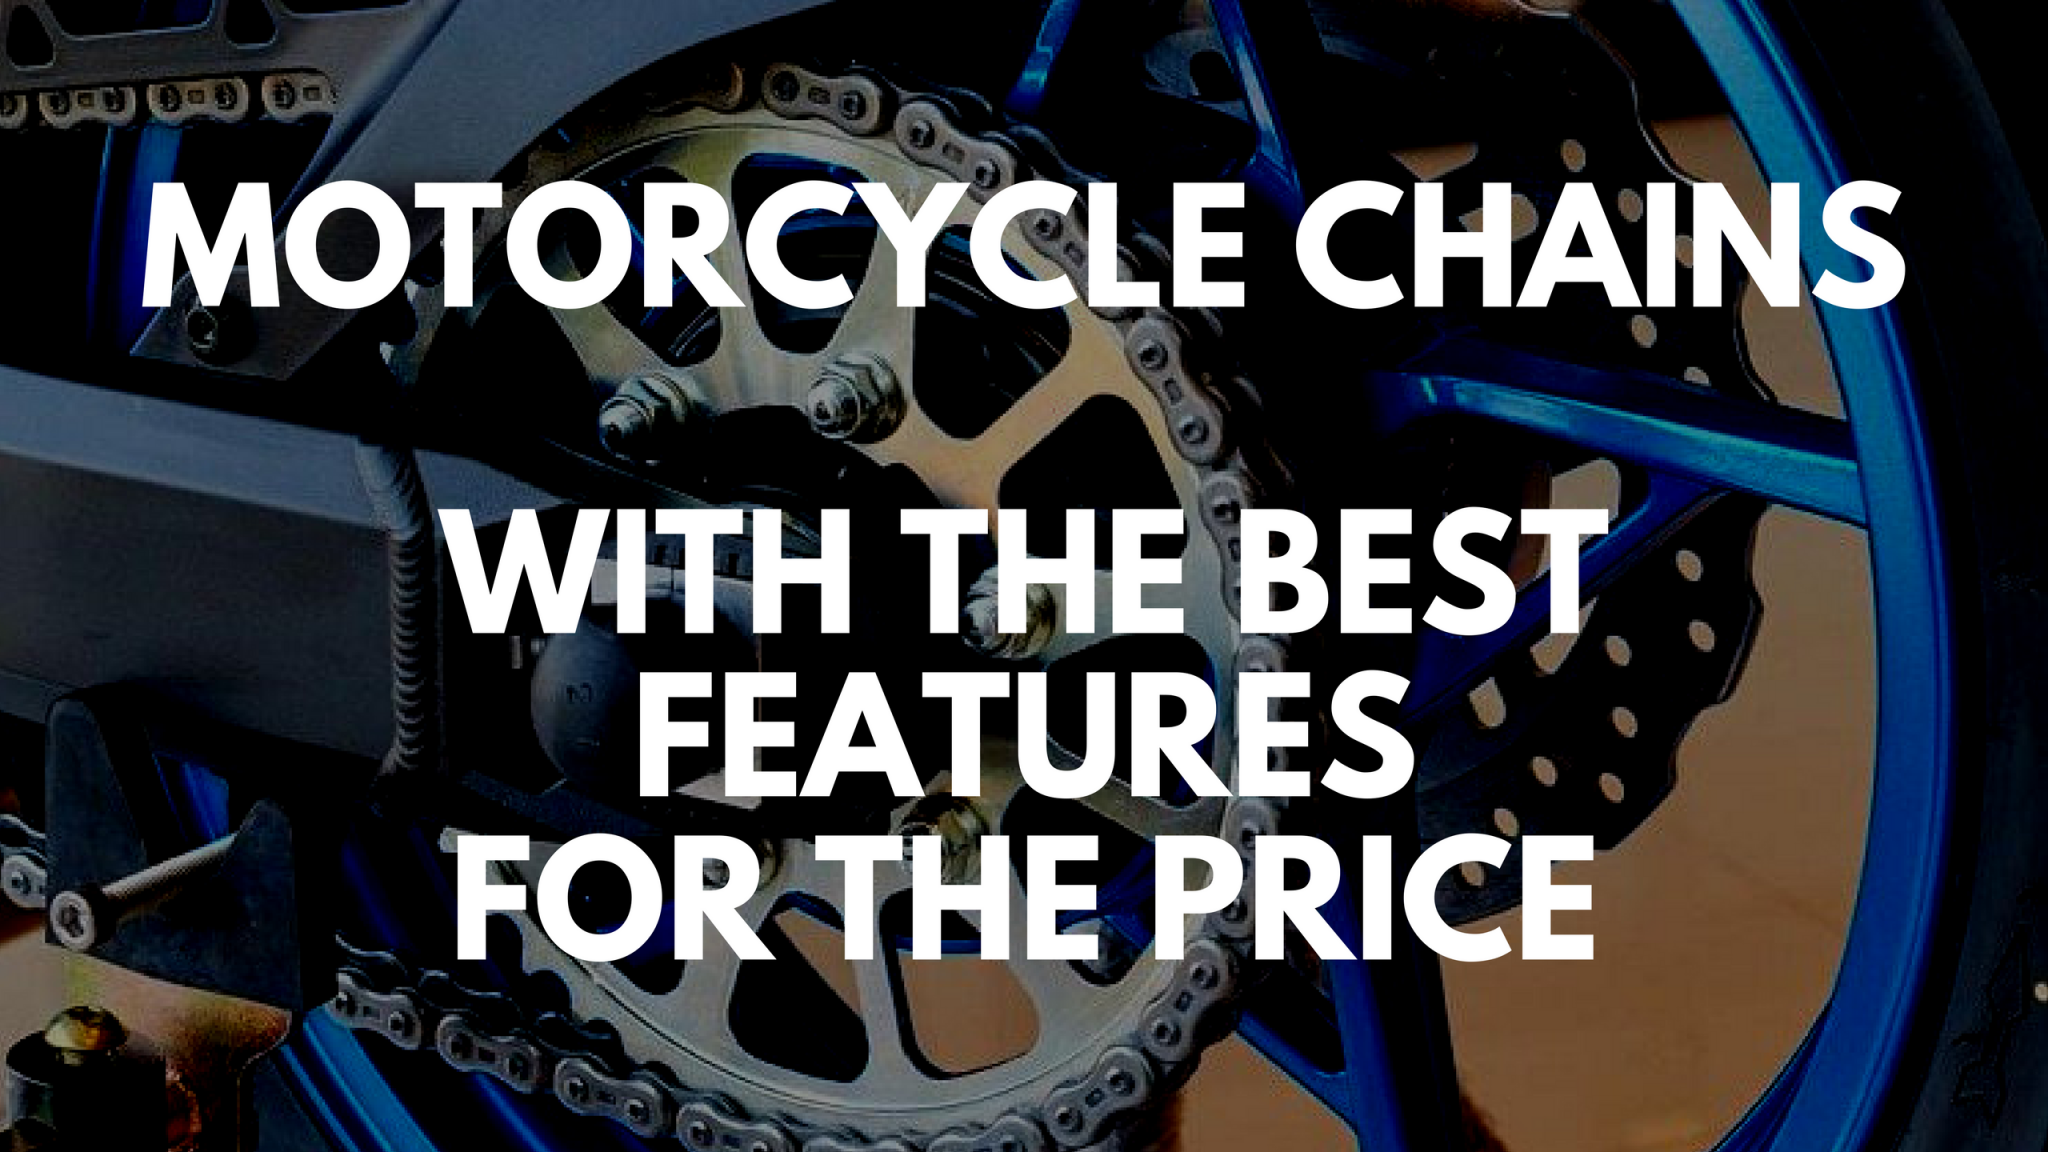 MOTORCYCLE CHAINS WITH THE BEST FEATURES FOR THE PRICE